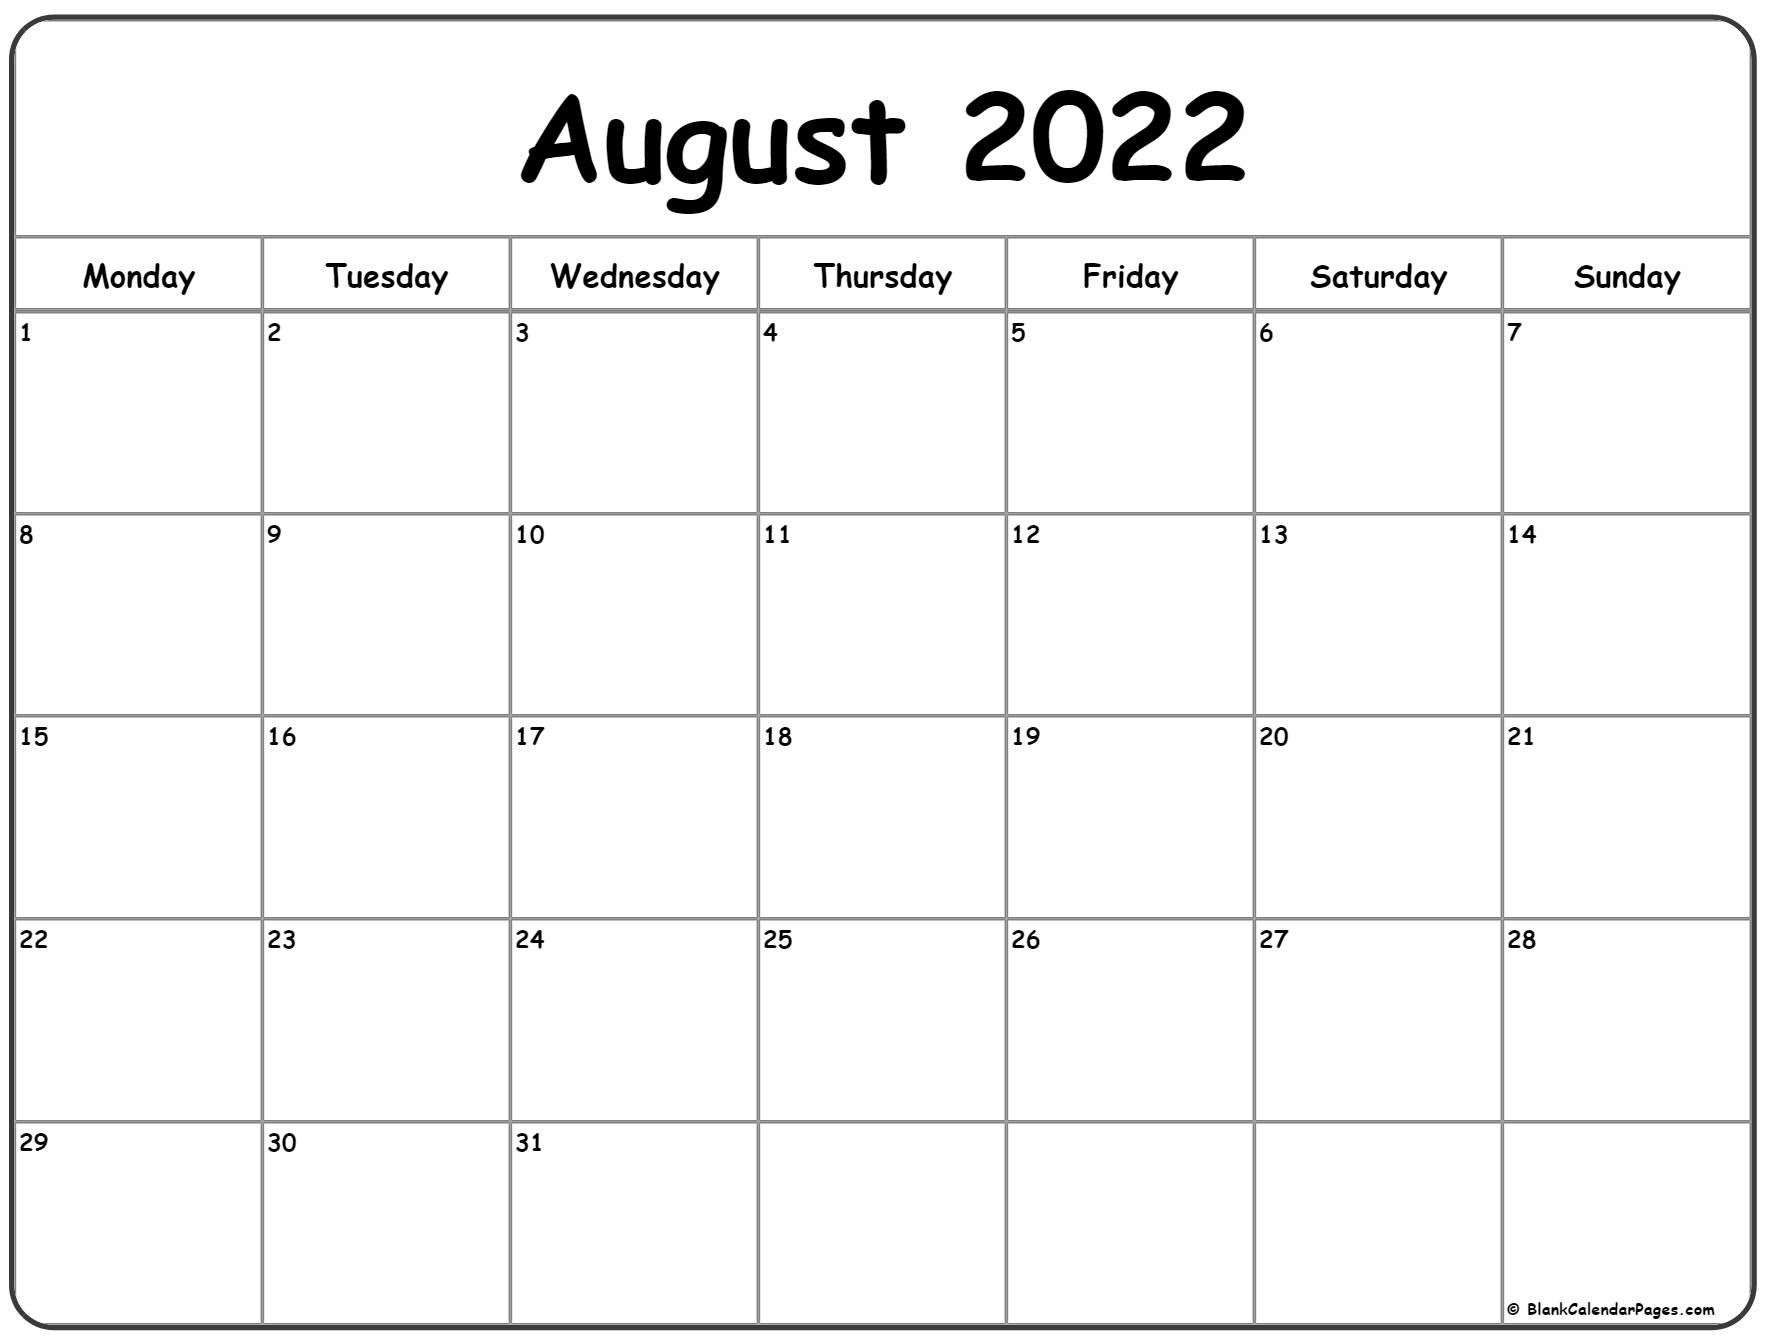 August 2022 Monday Calendar | Monday to Sunday